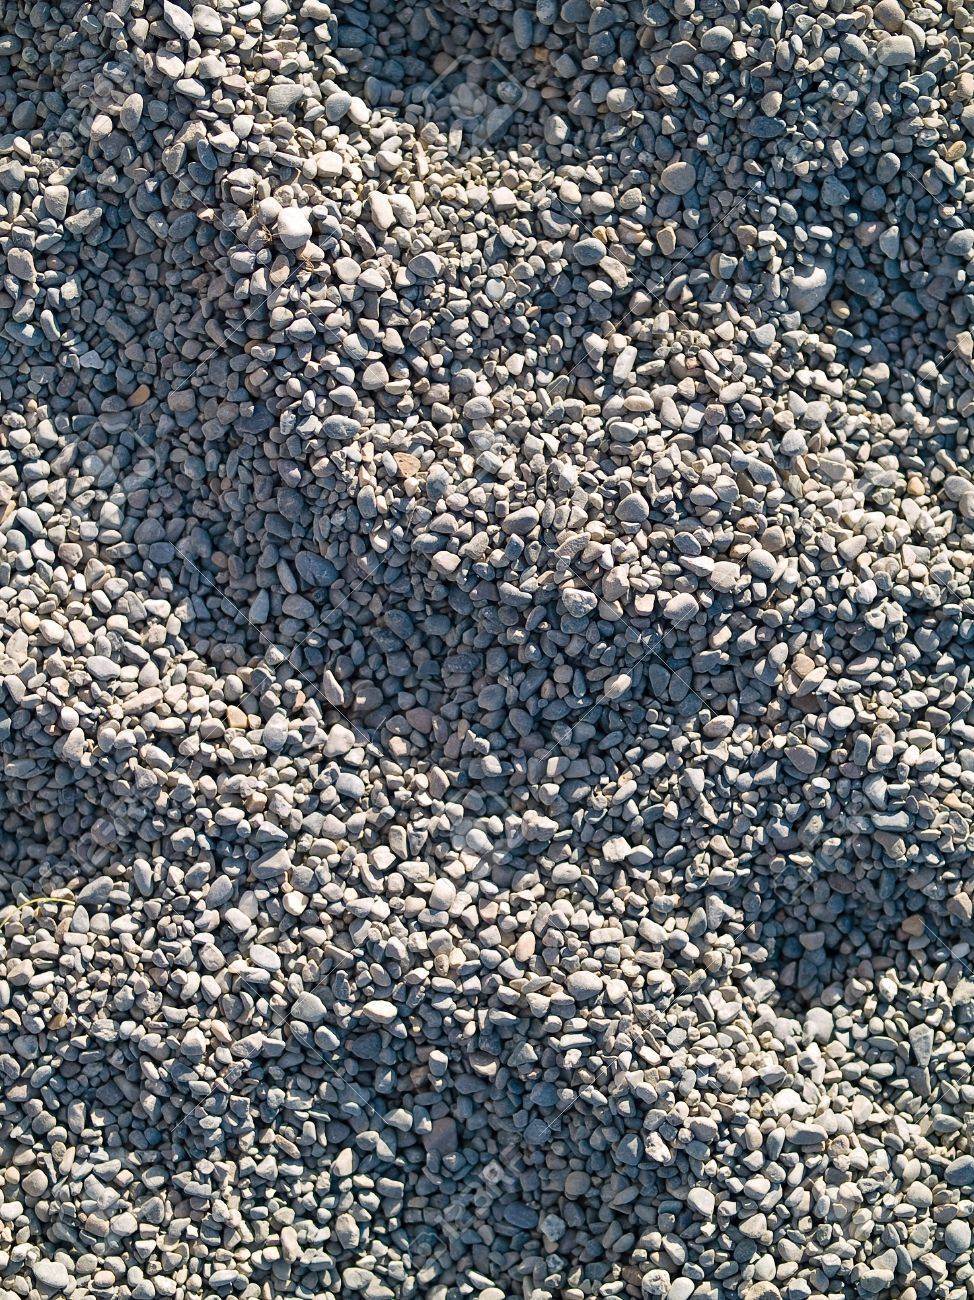 pea gravel playground play area stock photo sunlit playground pea gravel with shadows and footprints playground pea gravel with shadows and footprints